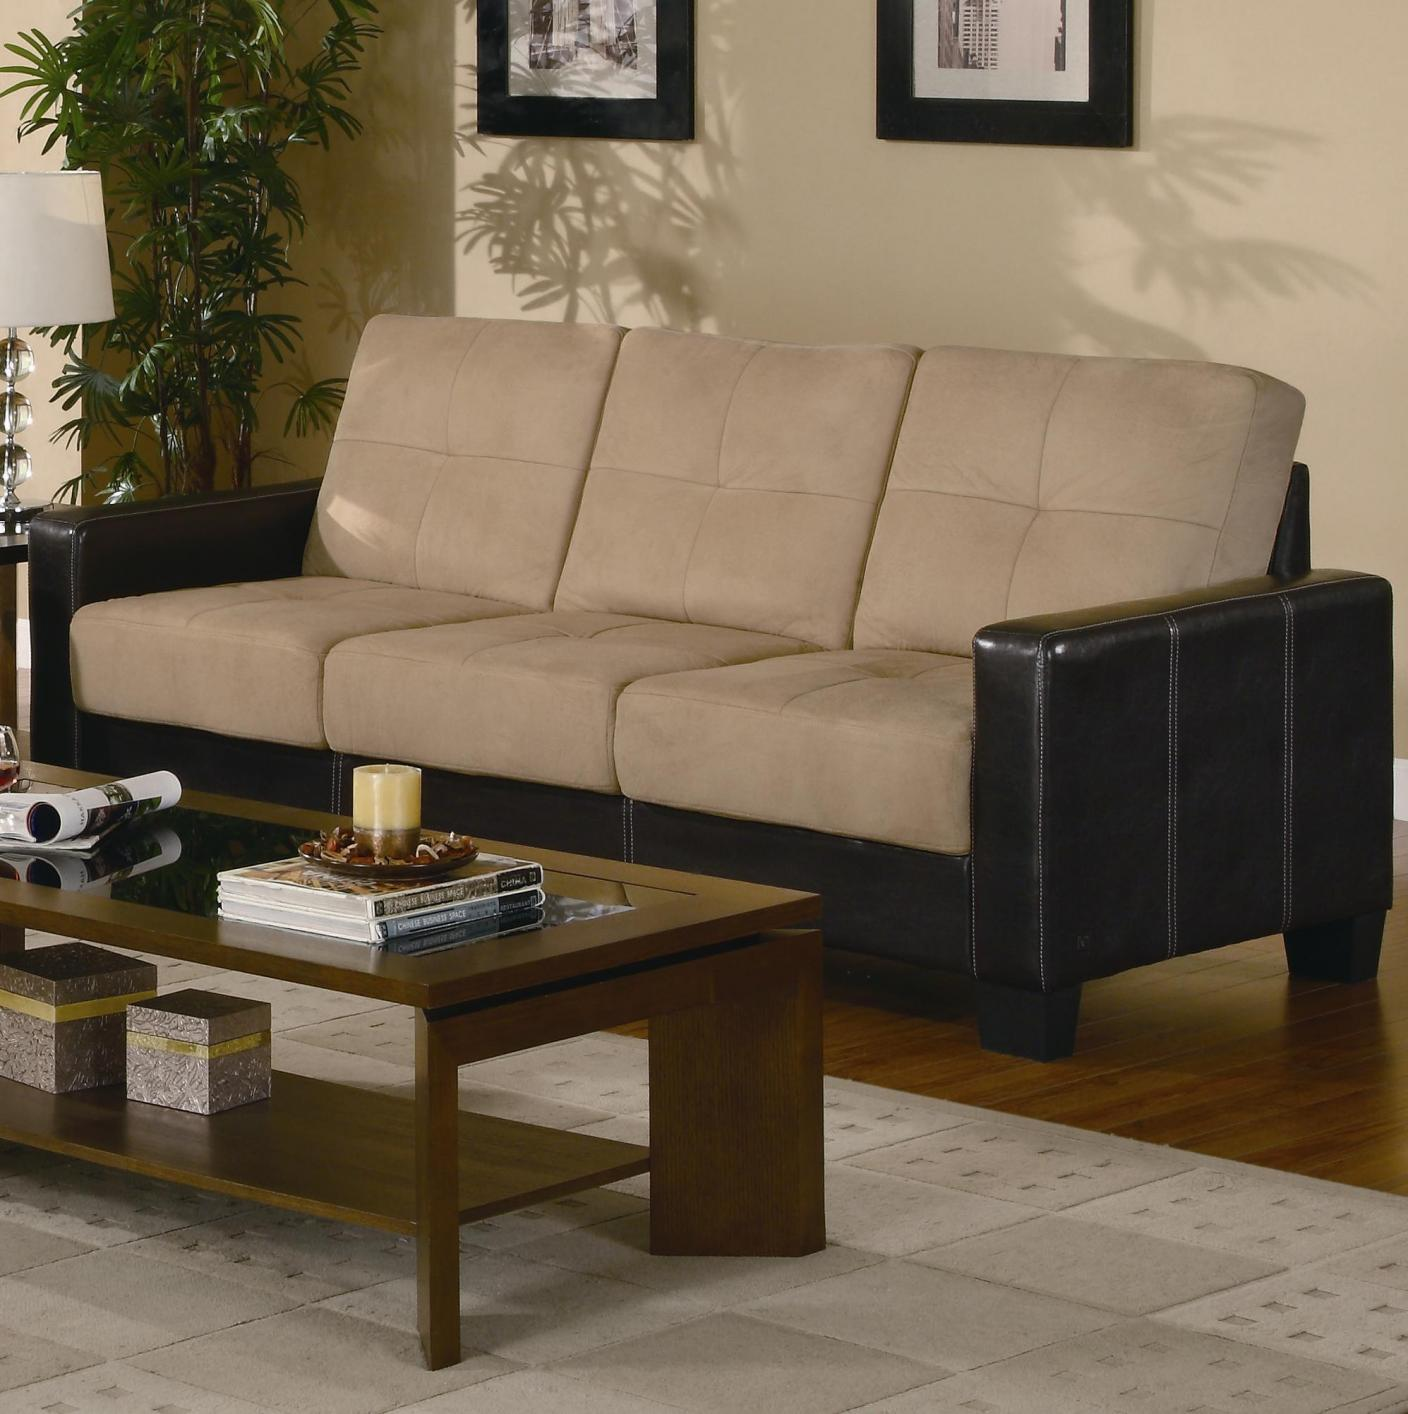 Leather Sofa Beige: Beige Leather Sofa Loveseat And Chair Set